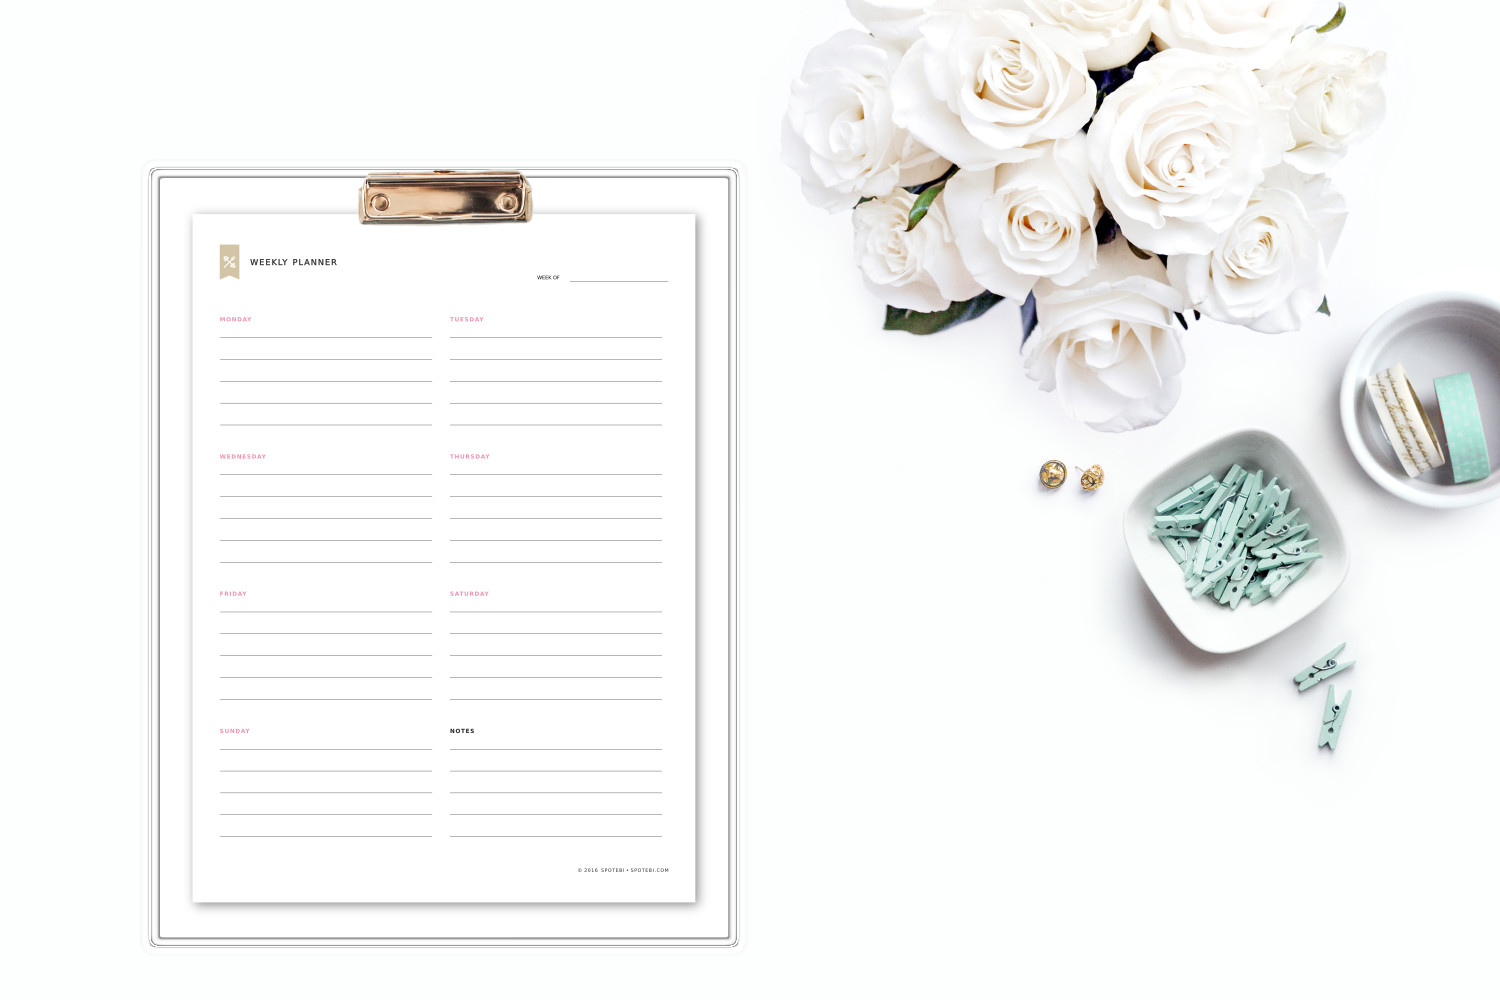 Get a weekly overview of your life with this free printable template. Set your top 3 priorities for the week and keep track of tasks, events, and appointments. Download and print our weekly planner template and start getting organized! https://www.spotebi.com/fitness-tracker/weekly-planner-template/